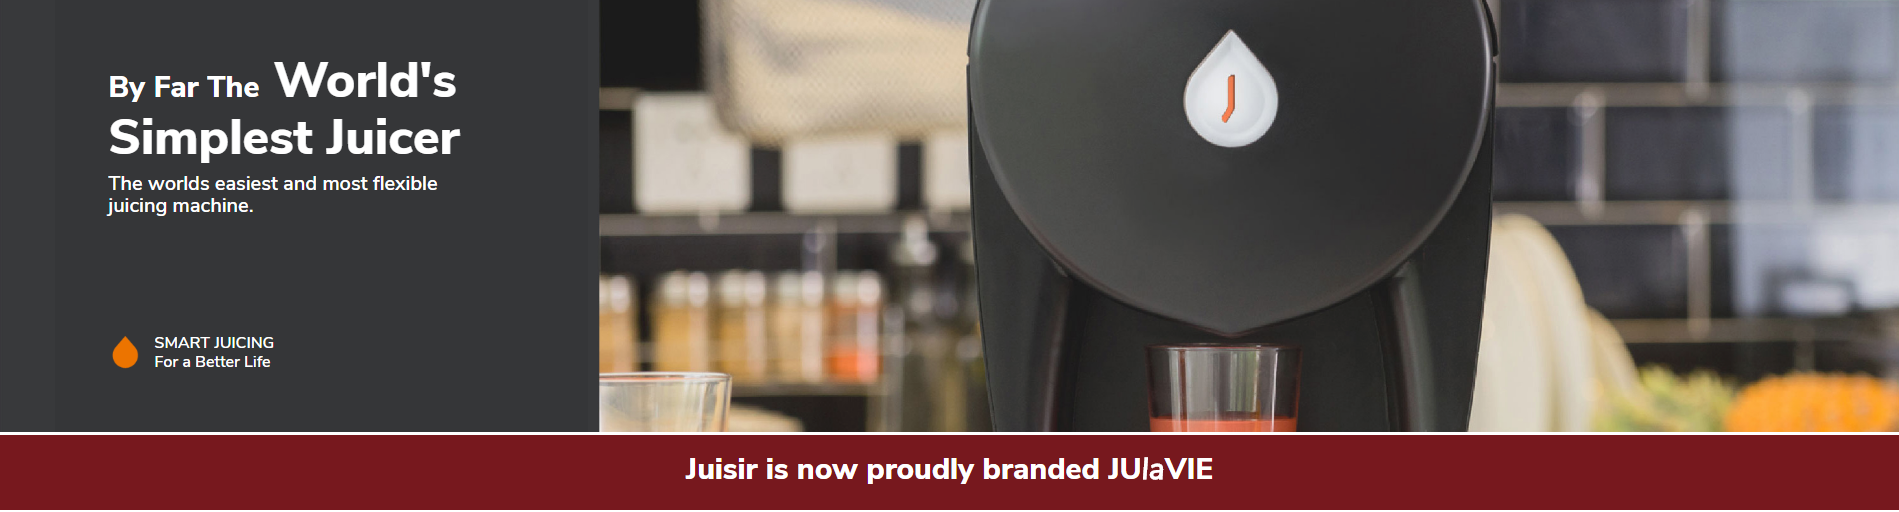 JUlaVie - the self-cleaning juicer